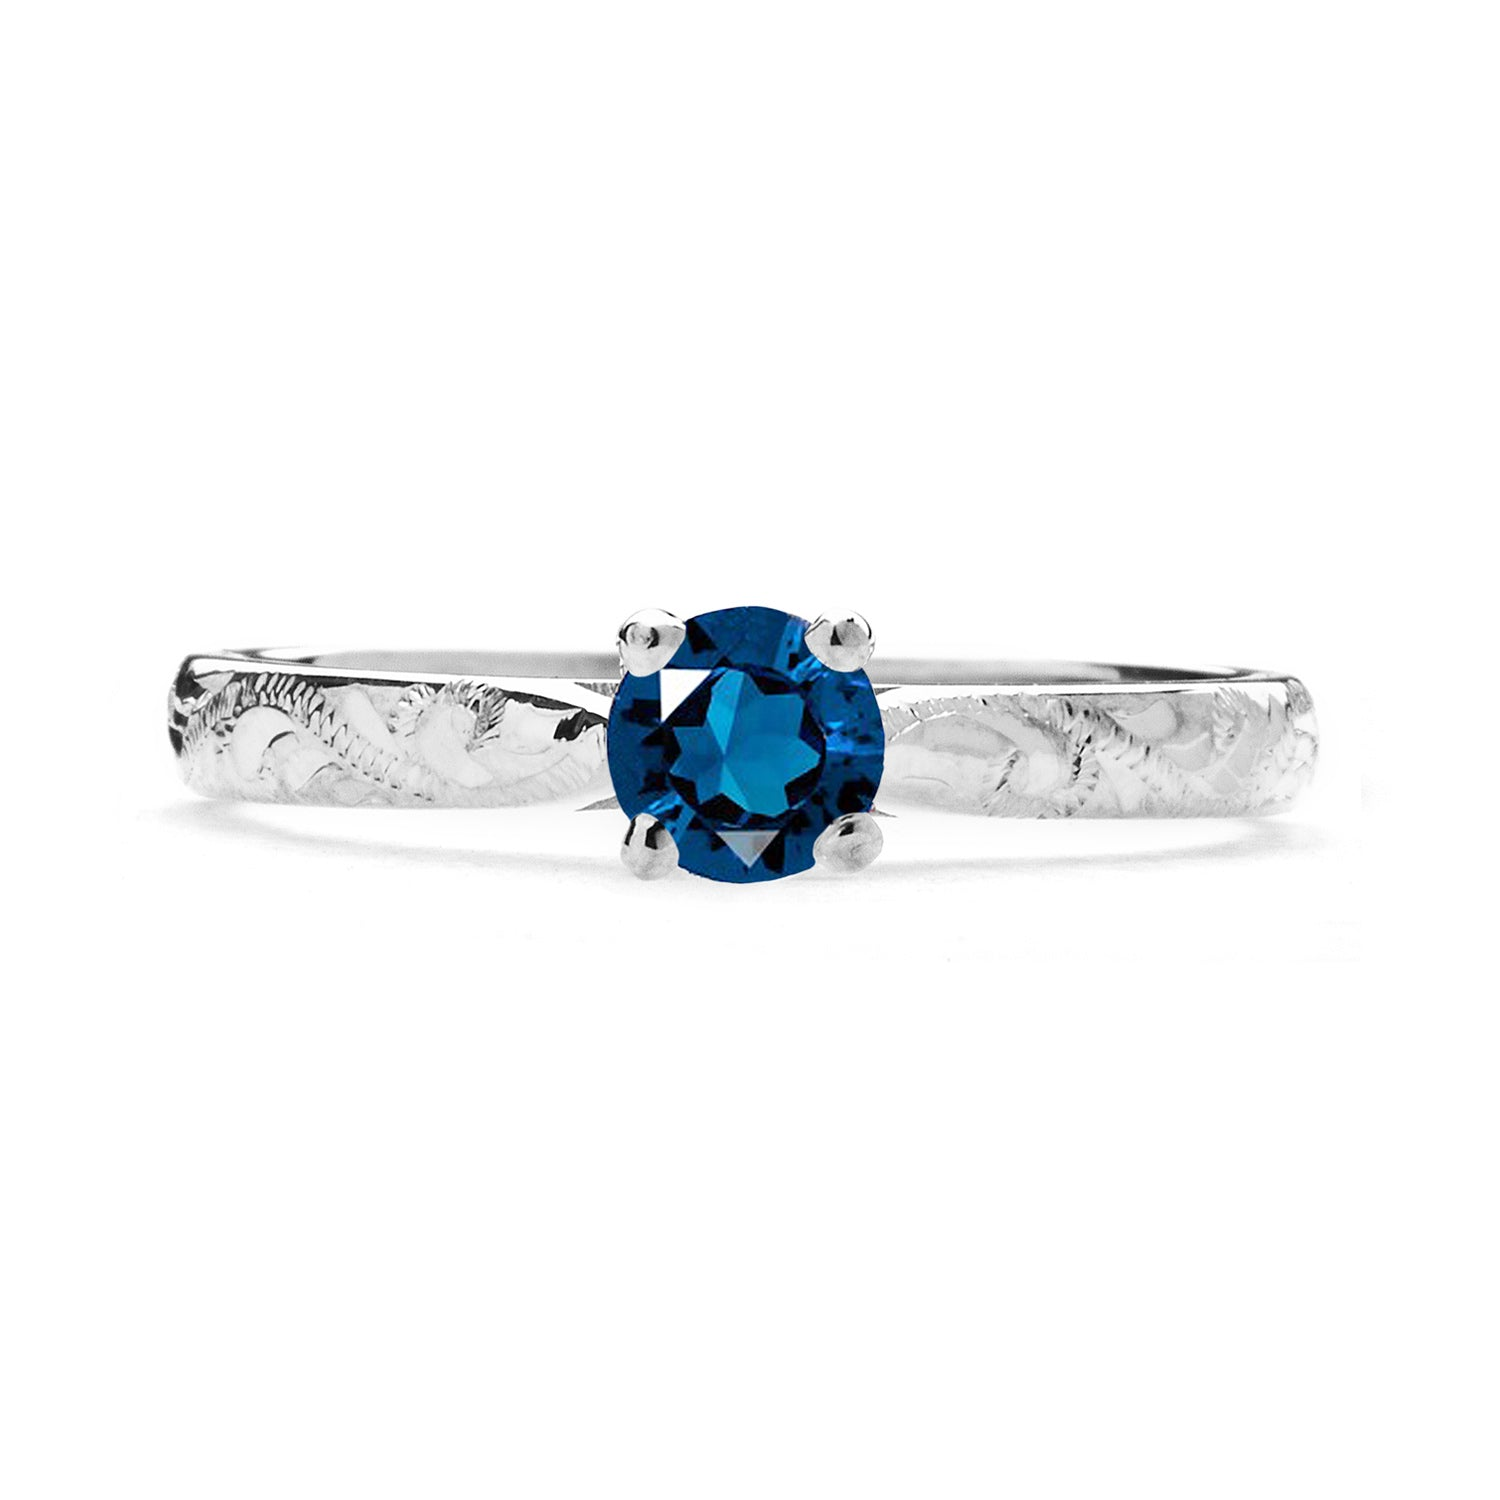 Athena Ethical Sapphire Gemstone Engagement Ring, 18ct Fairtrade Gold